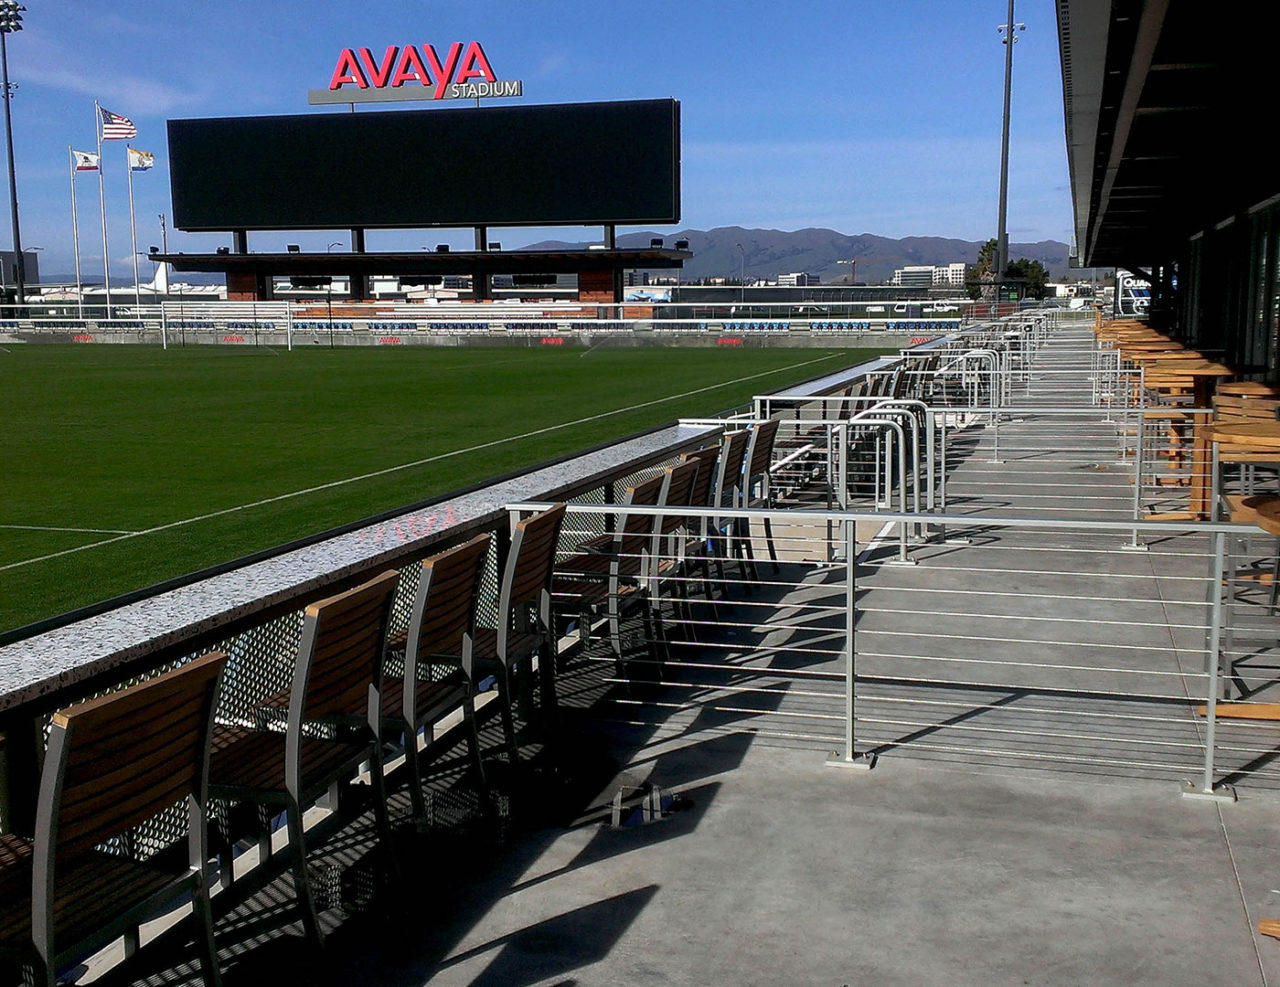 Avaya stadium used Tensiline cable railing as suite dividers